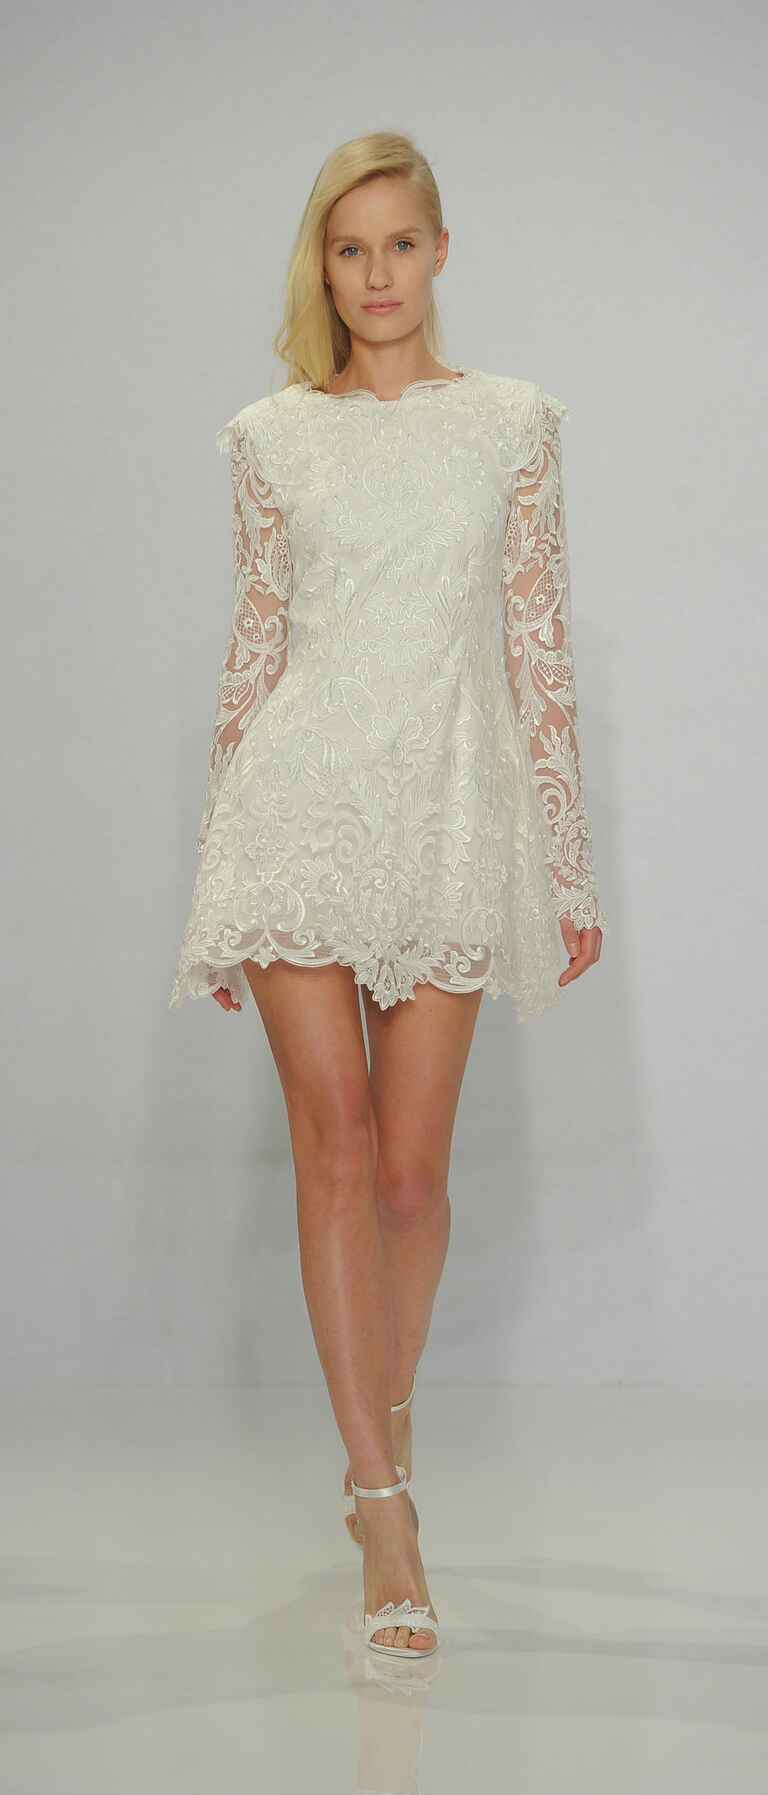 Christian Siriano Spring 2017 long sleeve lace mini wedding dress